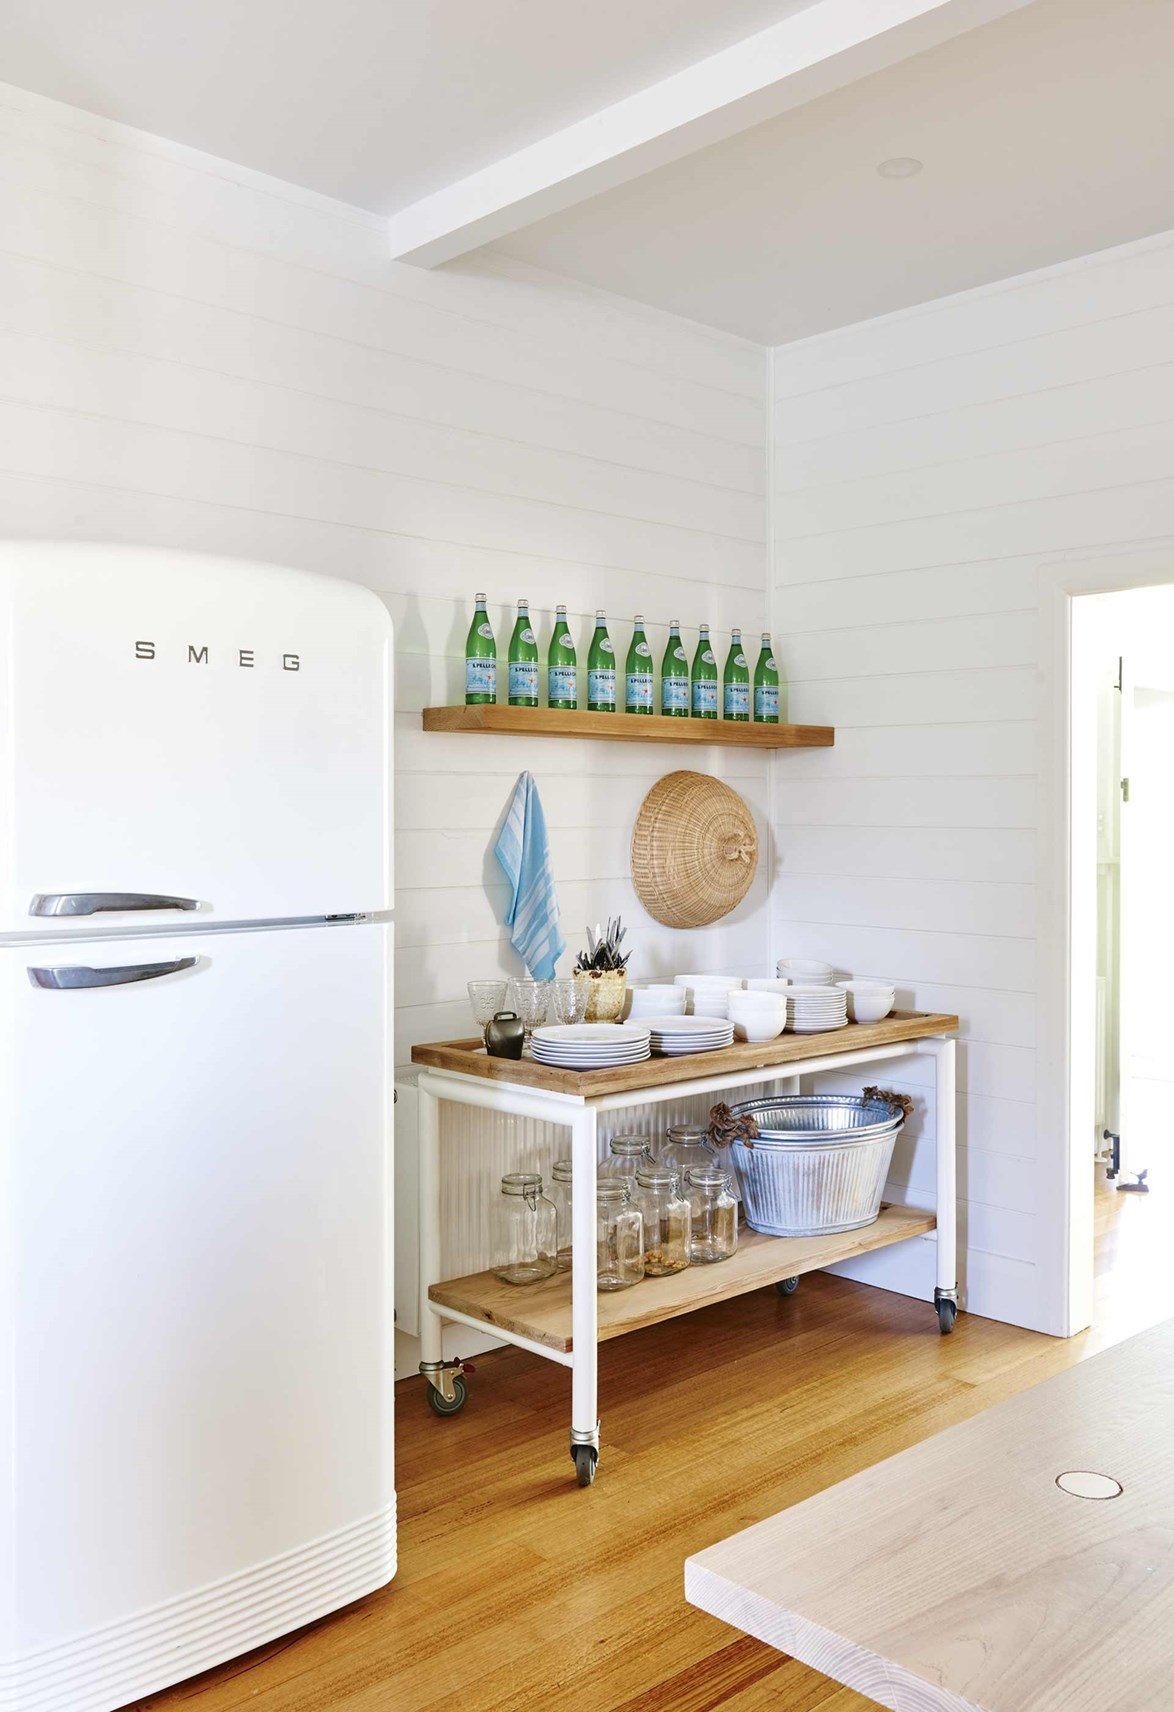 """<p>**PORTABLE SHELVING**<P> <p> Pinched for space? Then a portable kitchen island shelf or kitchen trolley could be the solution. This idea, which has been executed to a T in this renovated [Californian bungalow in Barwon Heads](https://www.homestolove.com.au/californian-bungalow-barwon-heads-17909